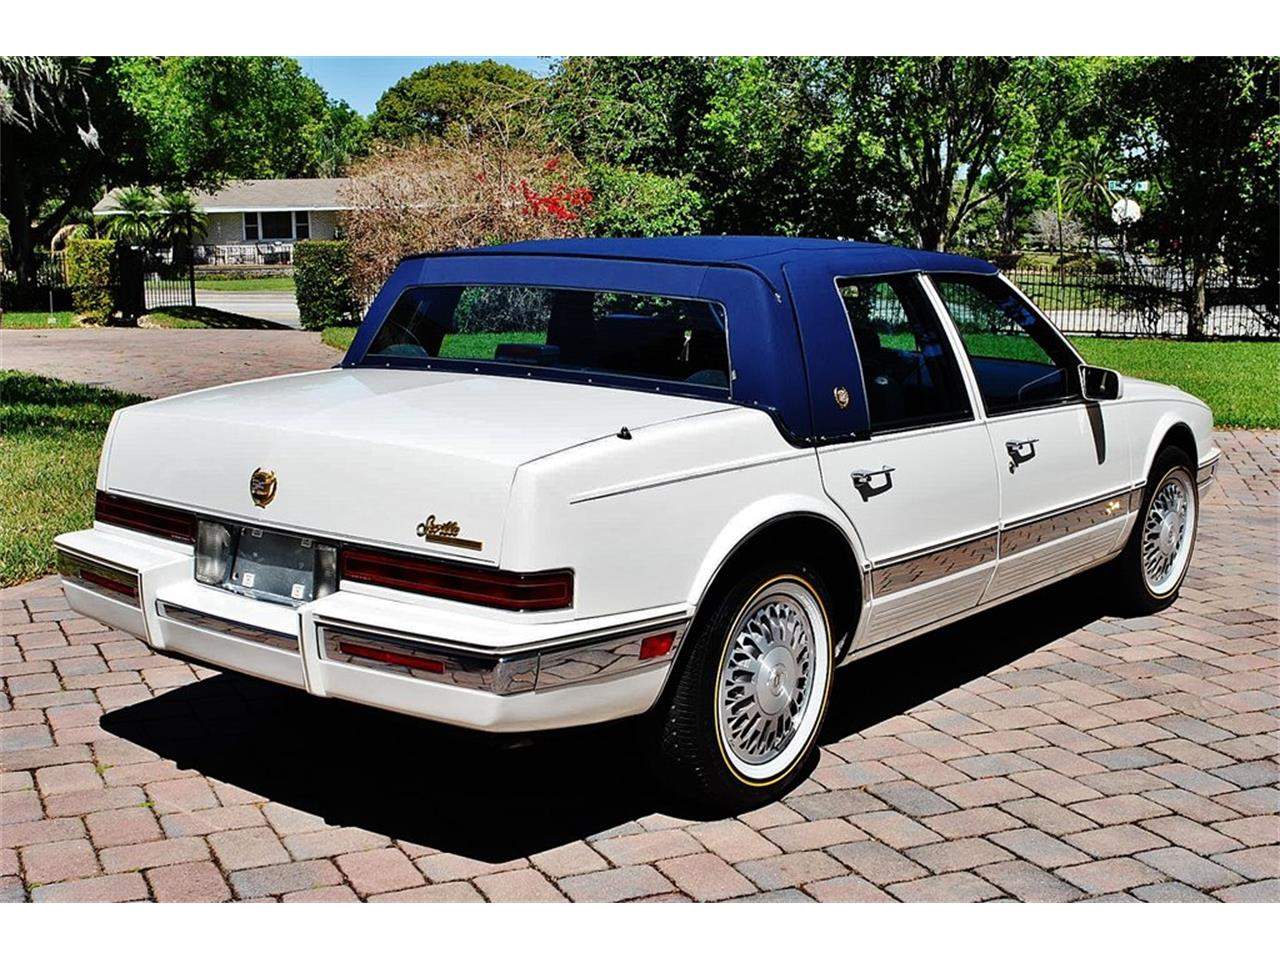 1991 cadillac seville for sale classiccars com cc 1077980 1991 cadillac seville for sale